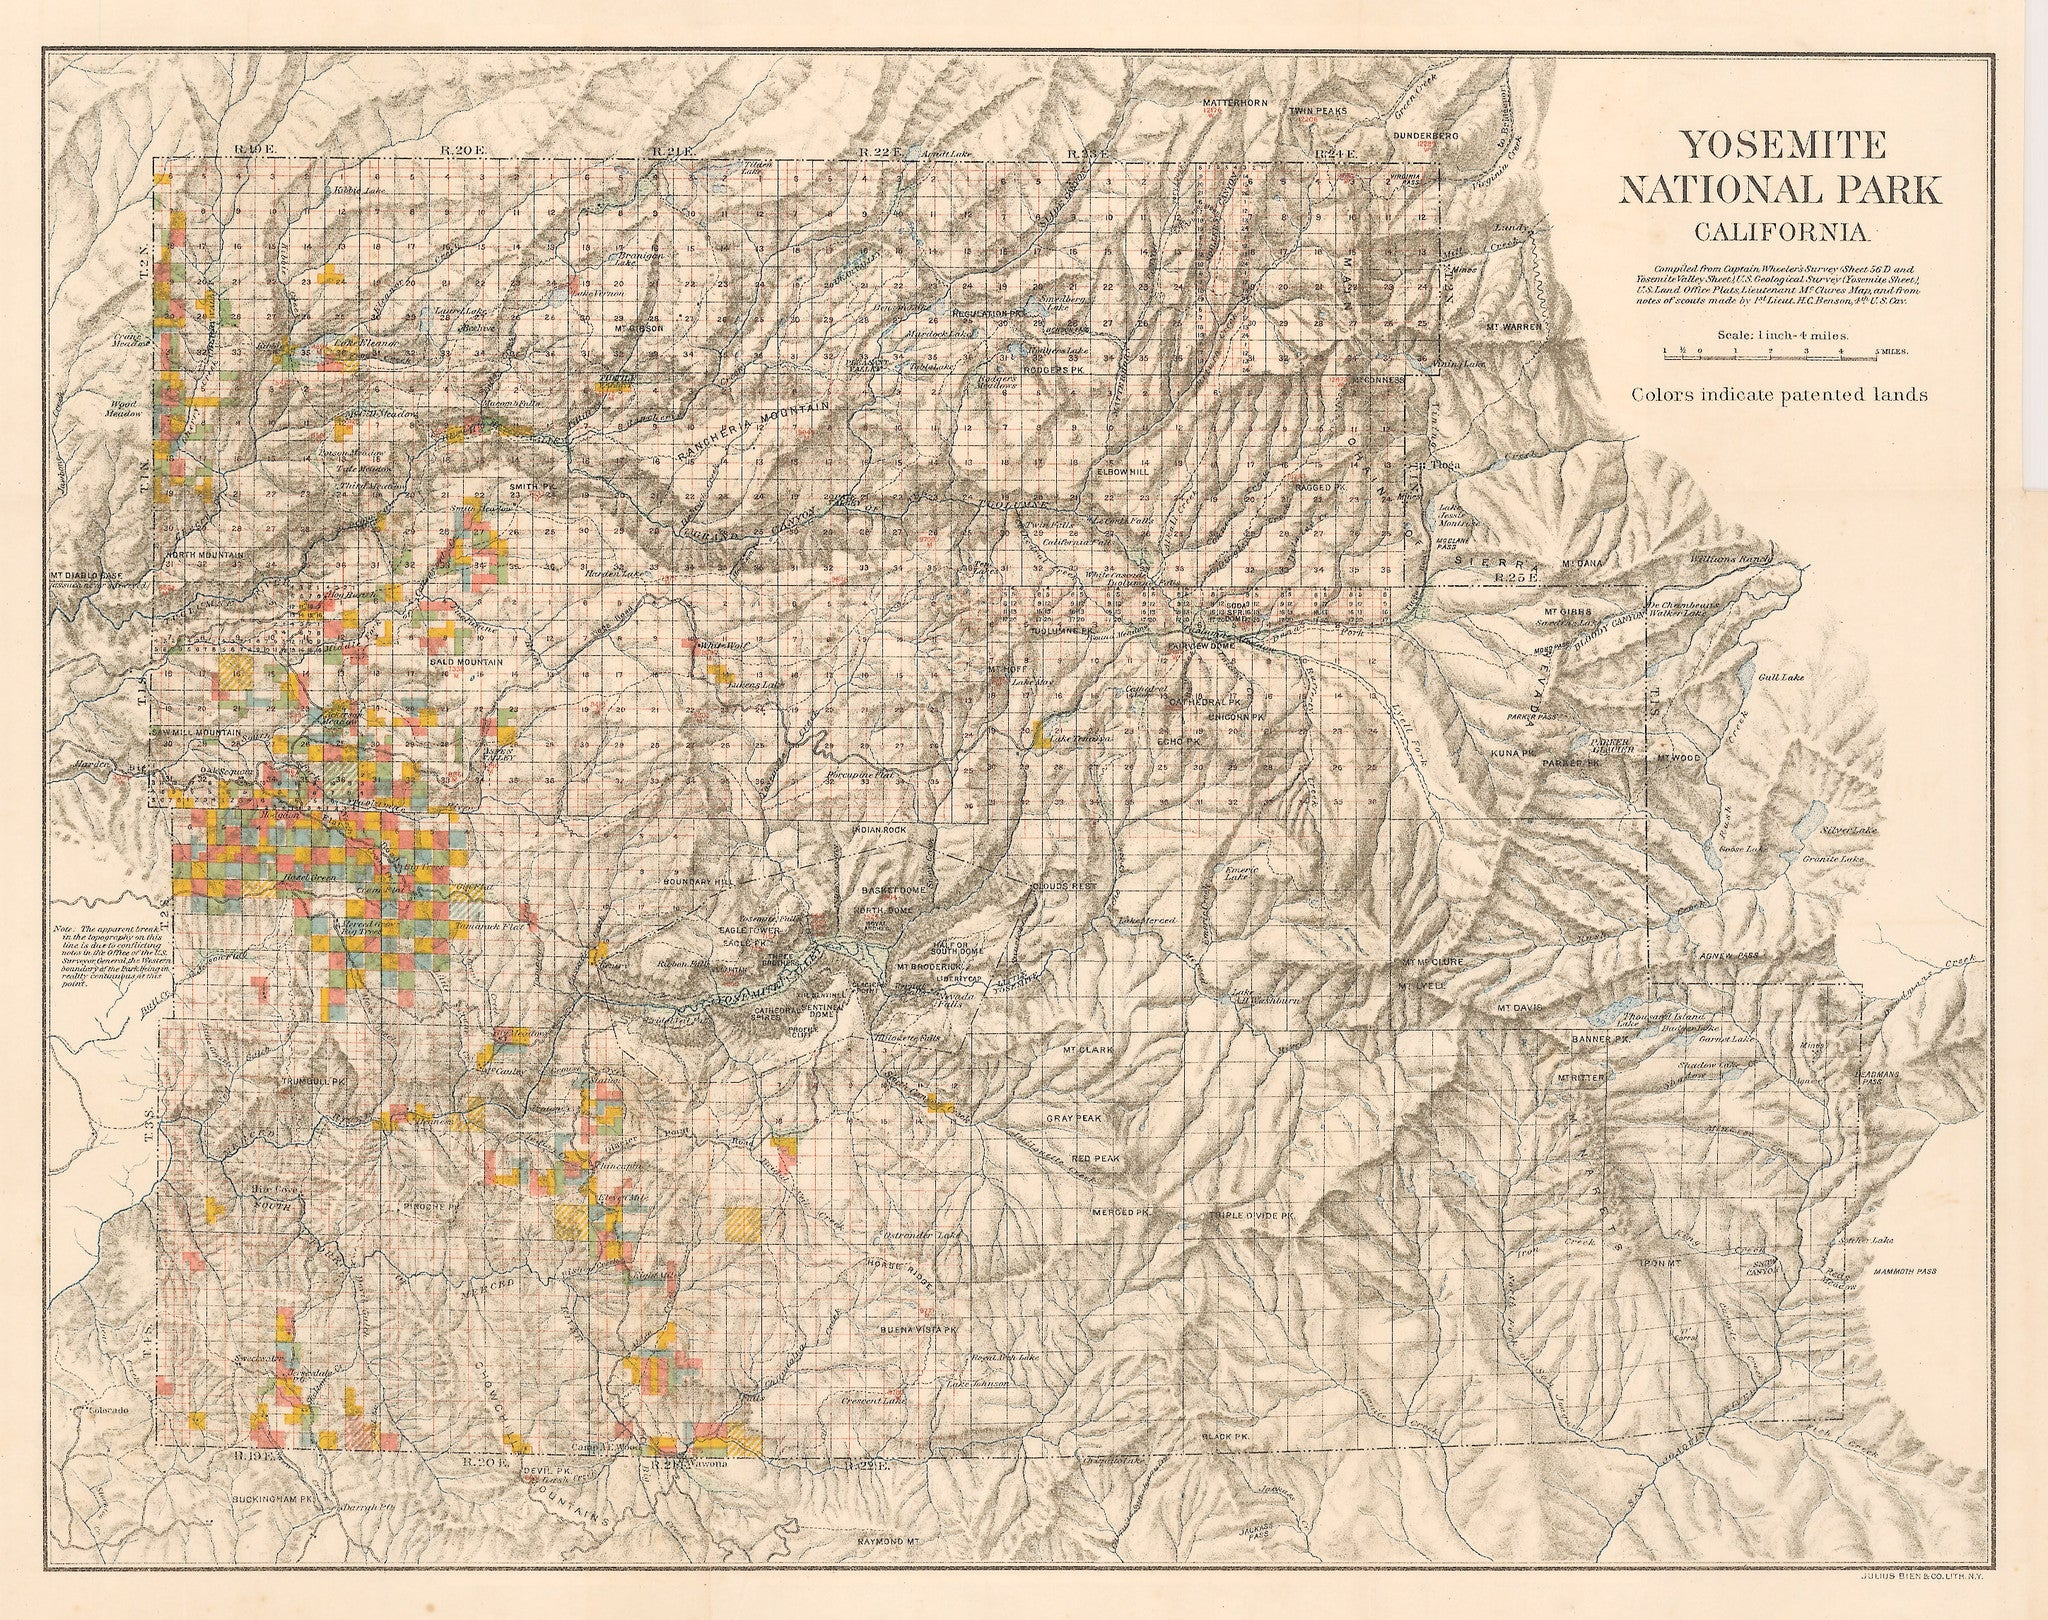 HJBMaps : Authentic Antique Map of Yosemite National Park, California 1898